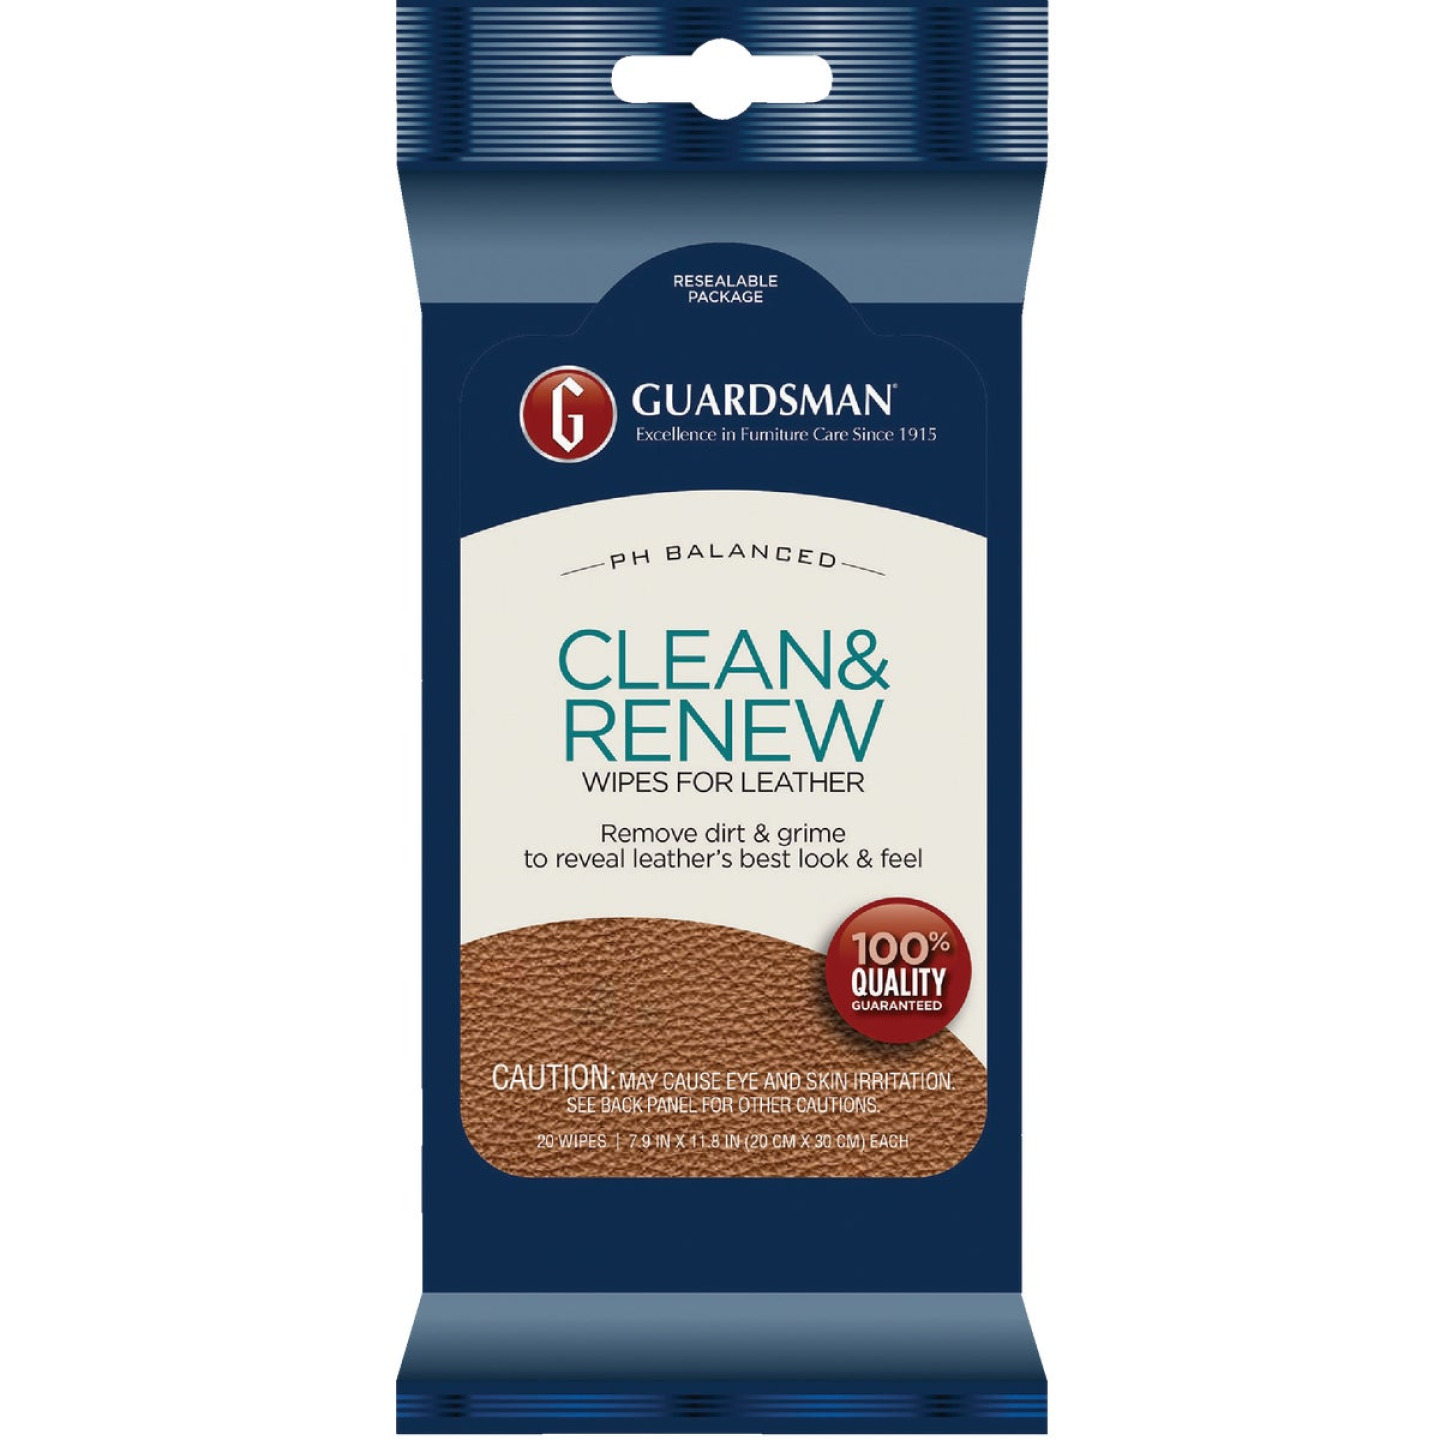 Guardsman Clean & Renew Leather Care Wipes (20-Pack) Image 1